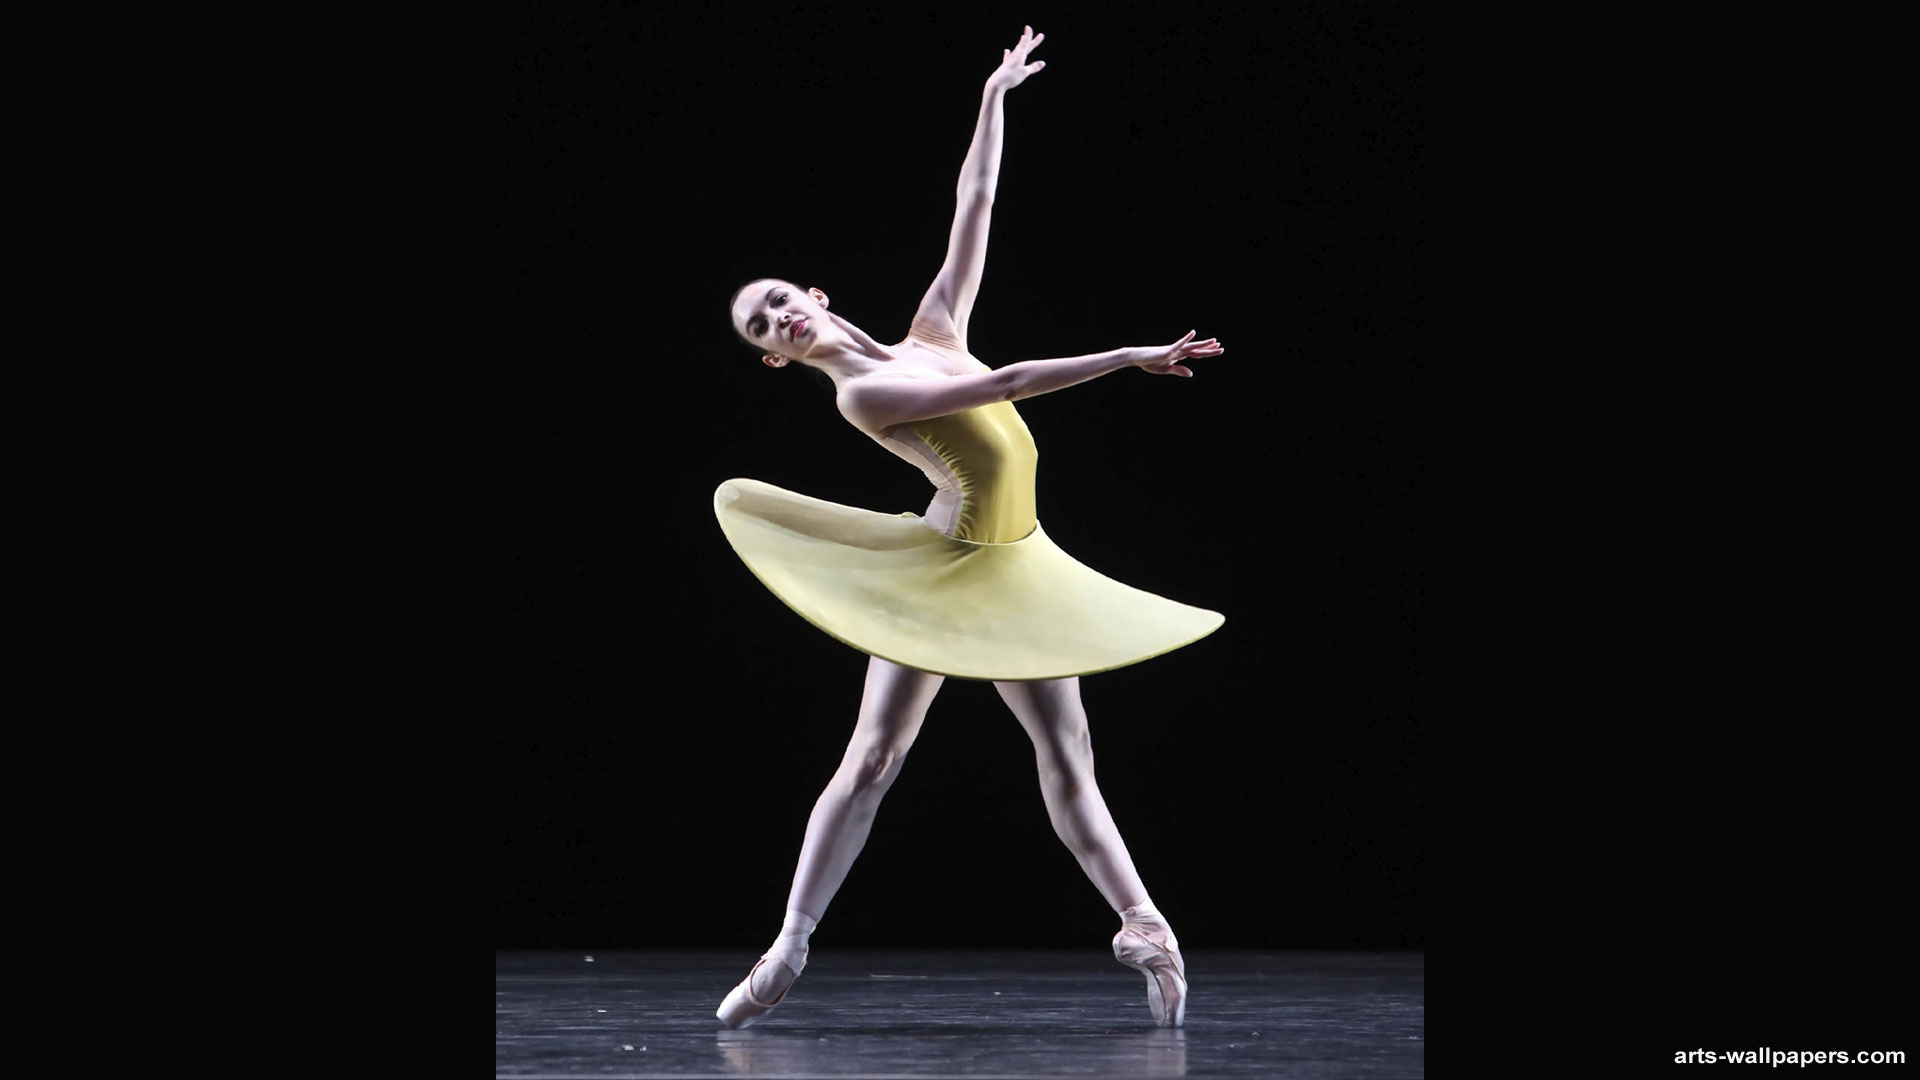 Free Download Ballet Wallpapers 1920x1080 For Your Desktop Mobile Tablet Explore 77 Ballet Wallpapers Ballerina Wallpaper Dance Wallpapers For Desktop Black And White Ballet Wallpaper